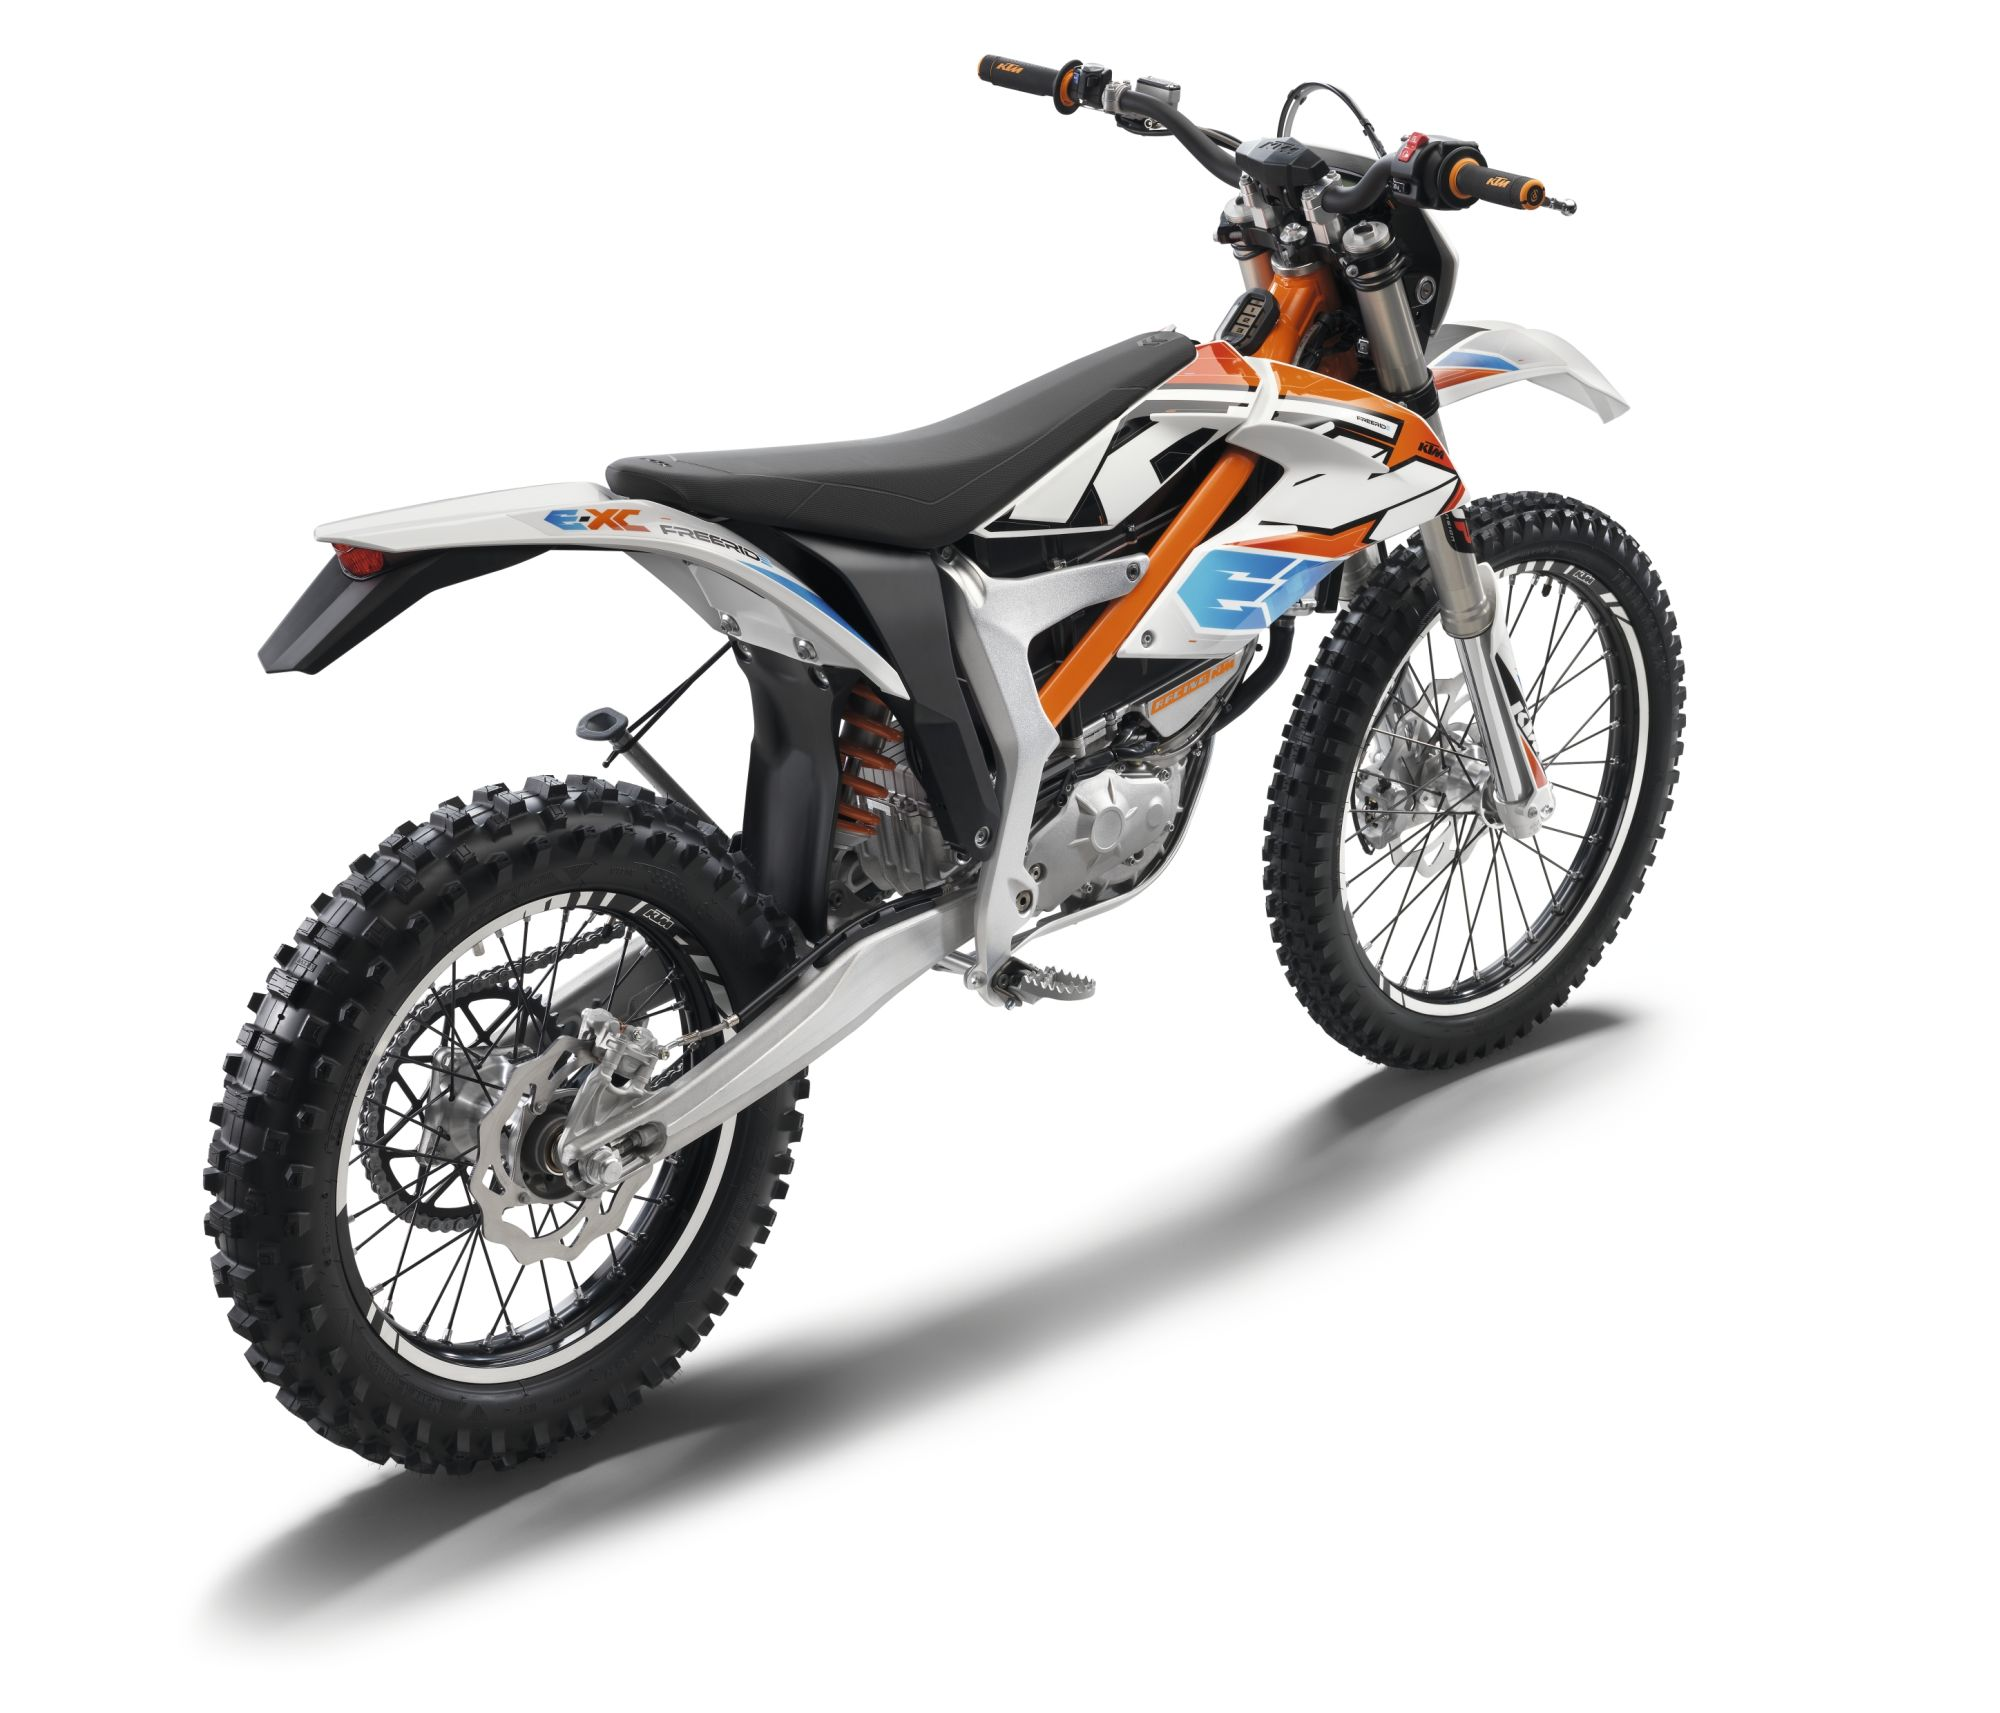 Ktm Freeride E Xc All Technical Data Of The Model